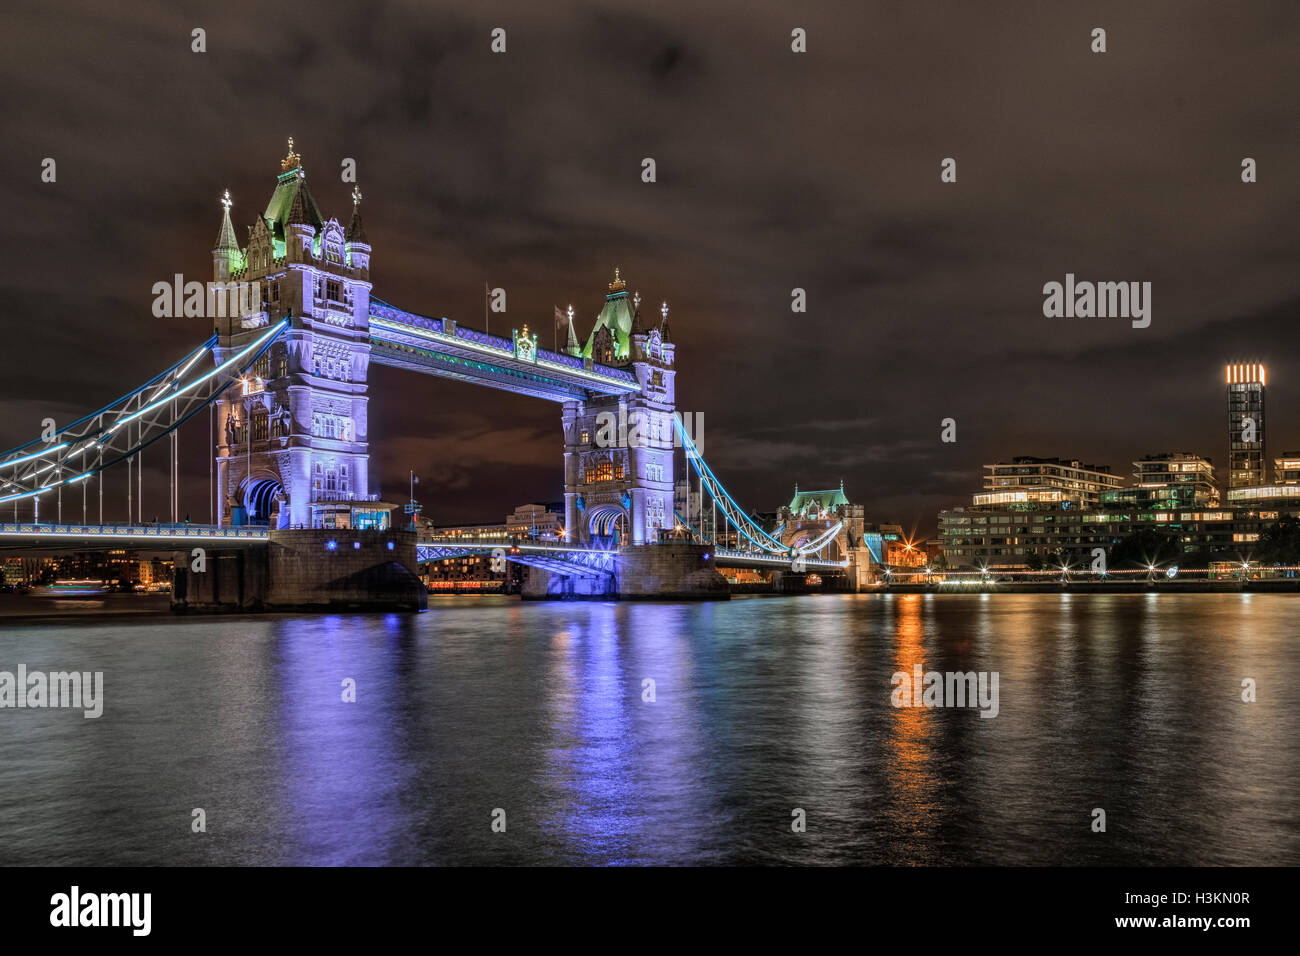 Tower Bridge, Londres, Inglaterra, Reino Unido. Imagen De Stock